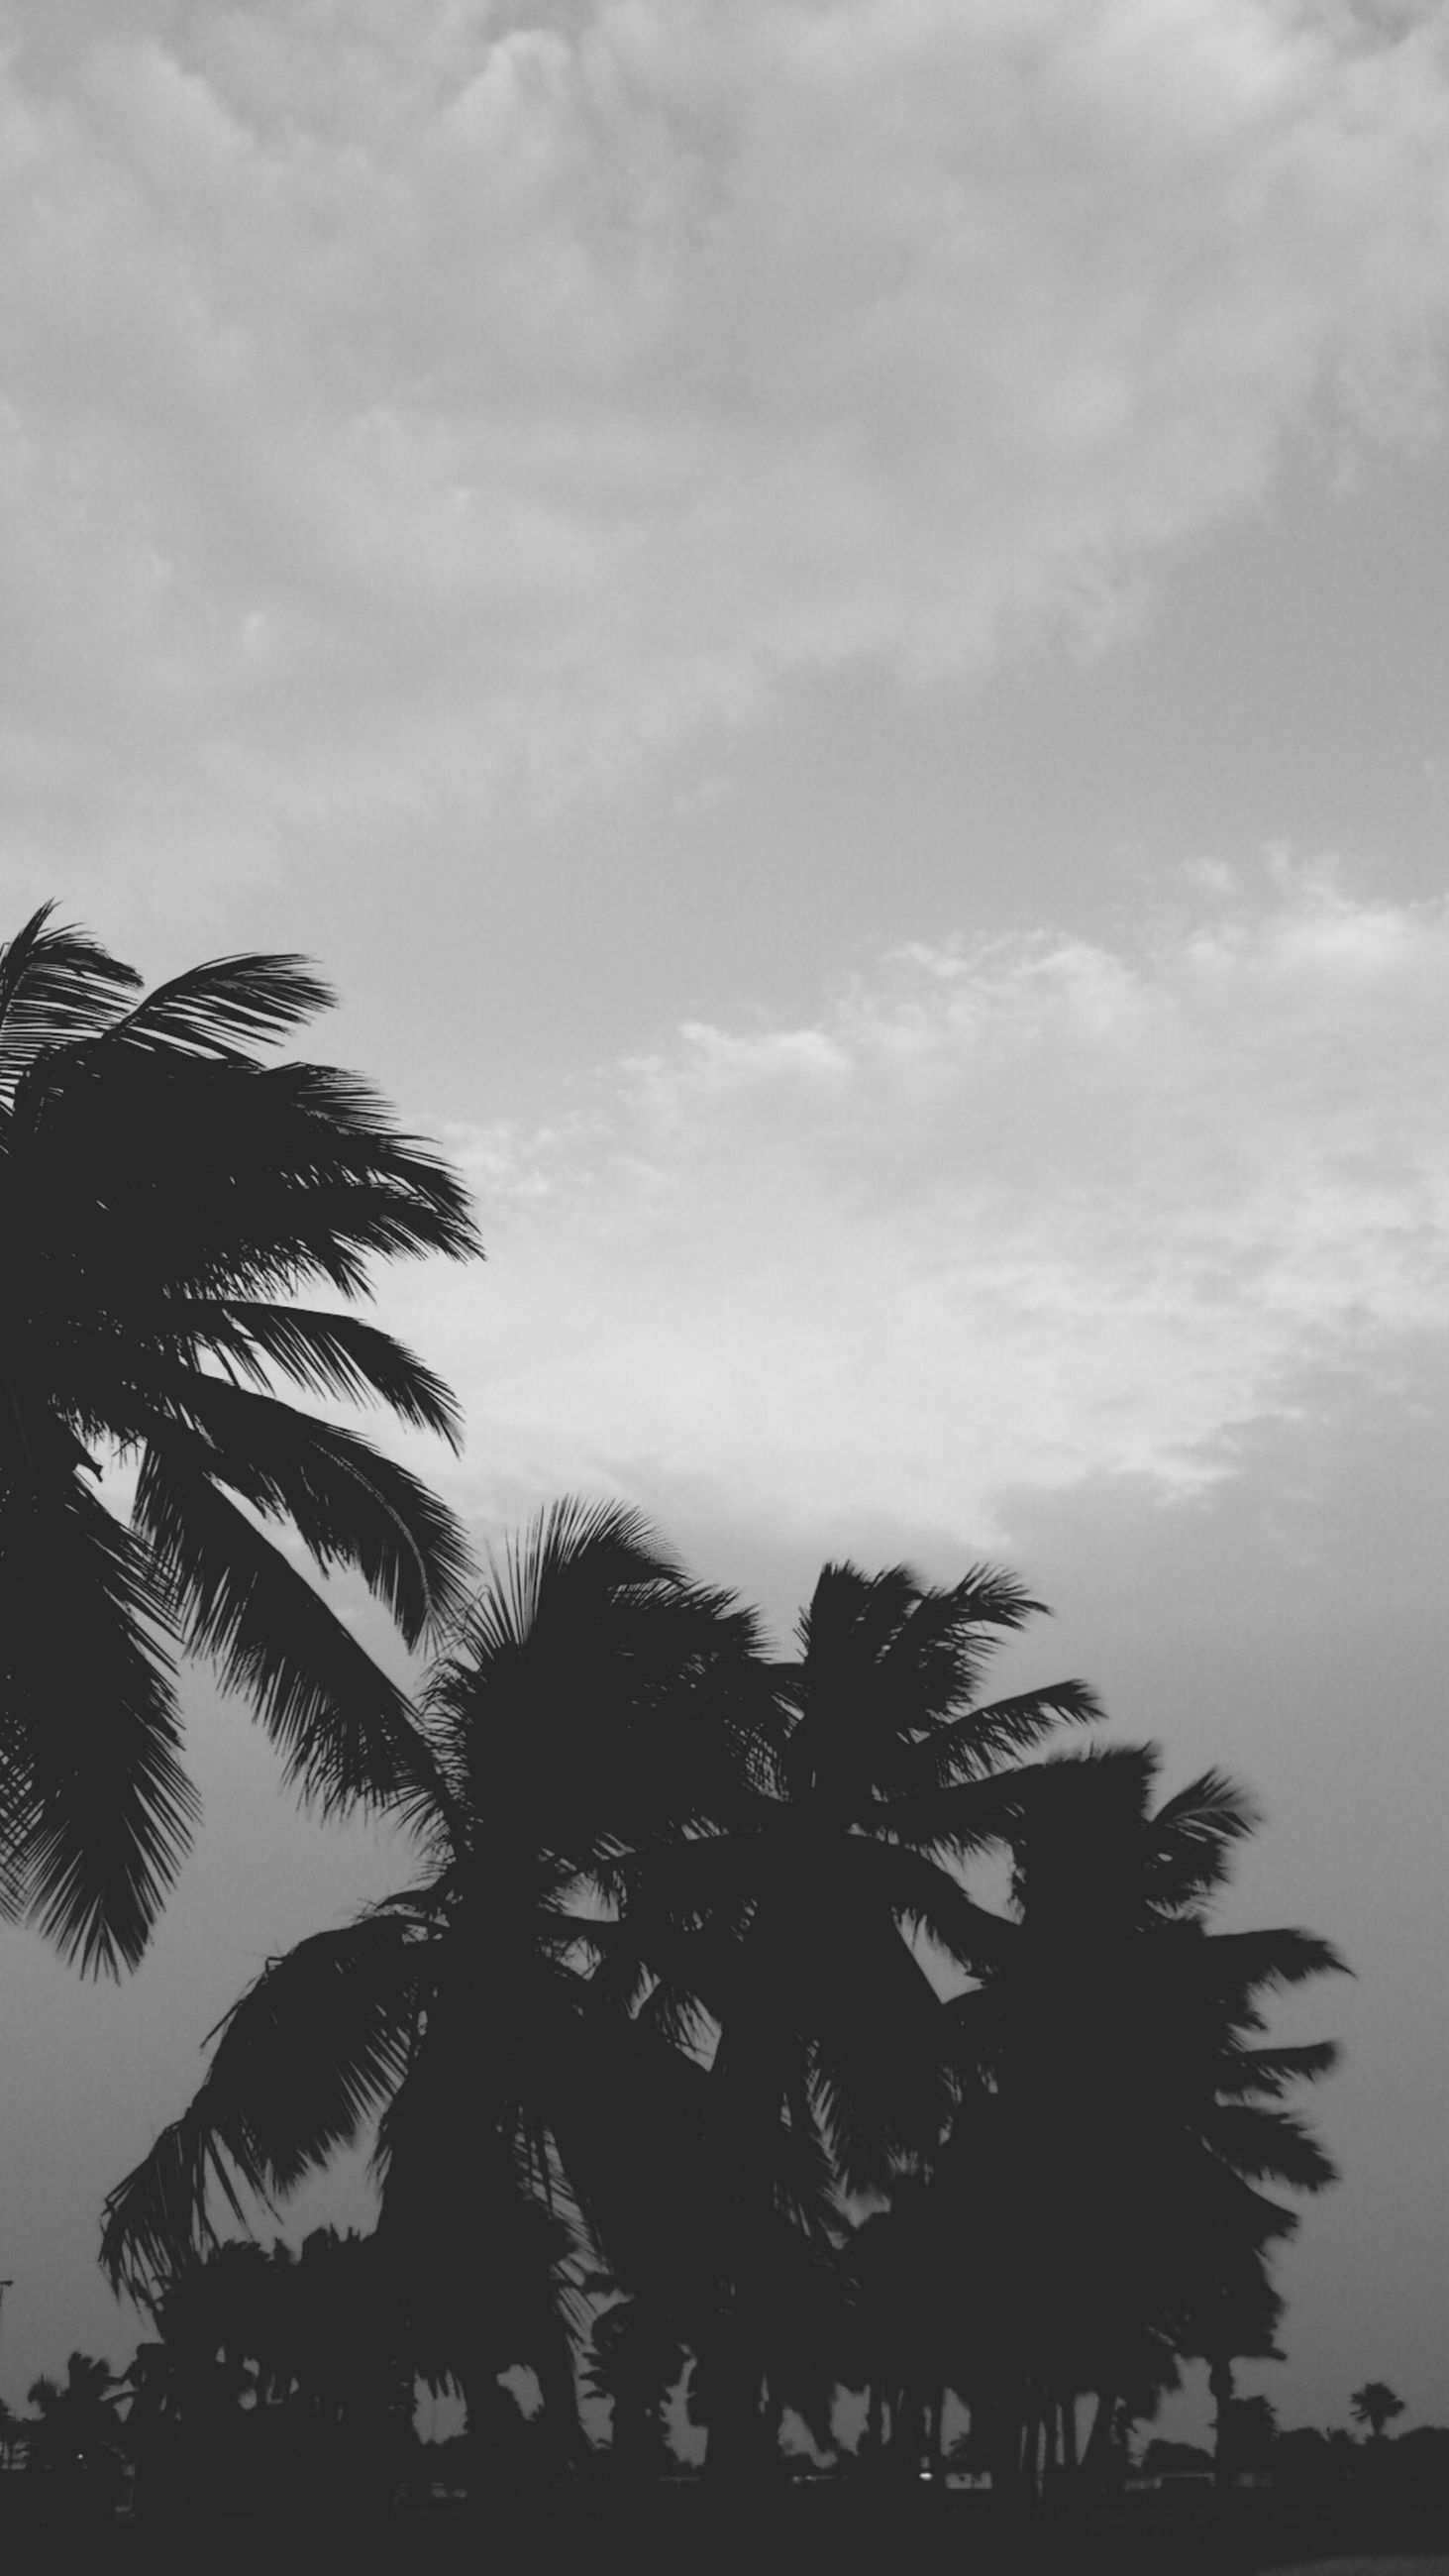 palm tree, tree, sky, low angle view, silhouette, cloud - sky, growth, tranquility, nature, beauty in nature, cloudy, cloud, scenics, tranquil scene, branch, outdoors, no people, day, tree trunk, coconut palm tree